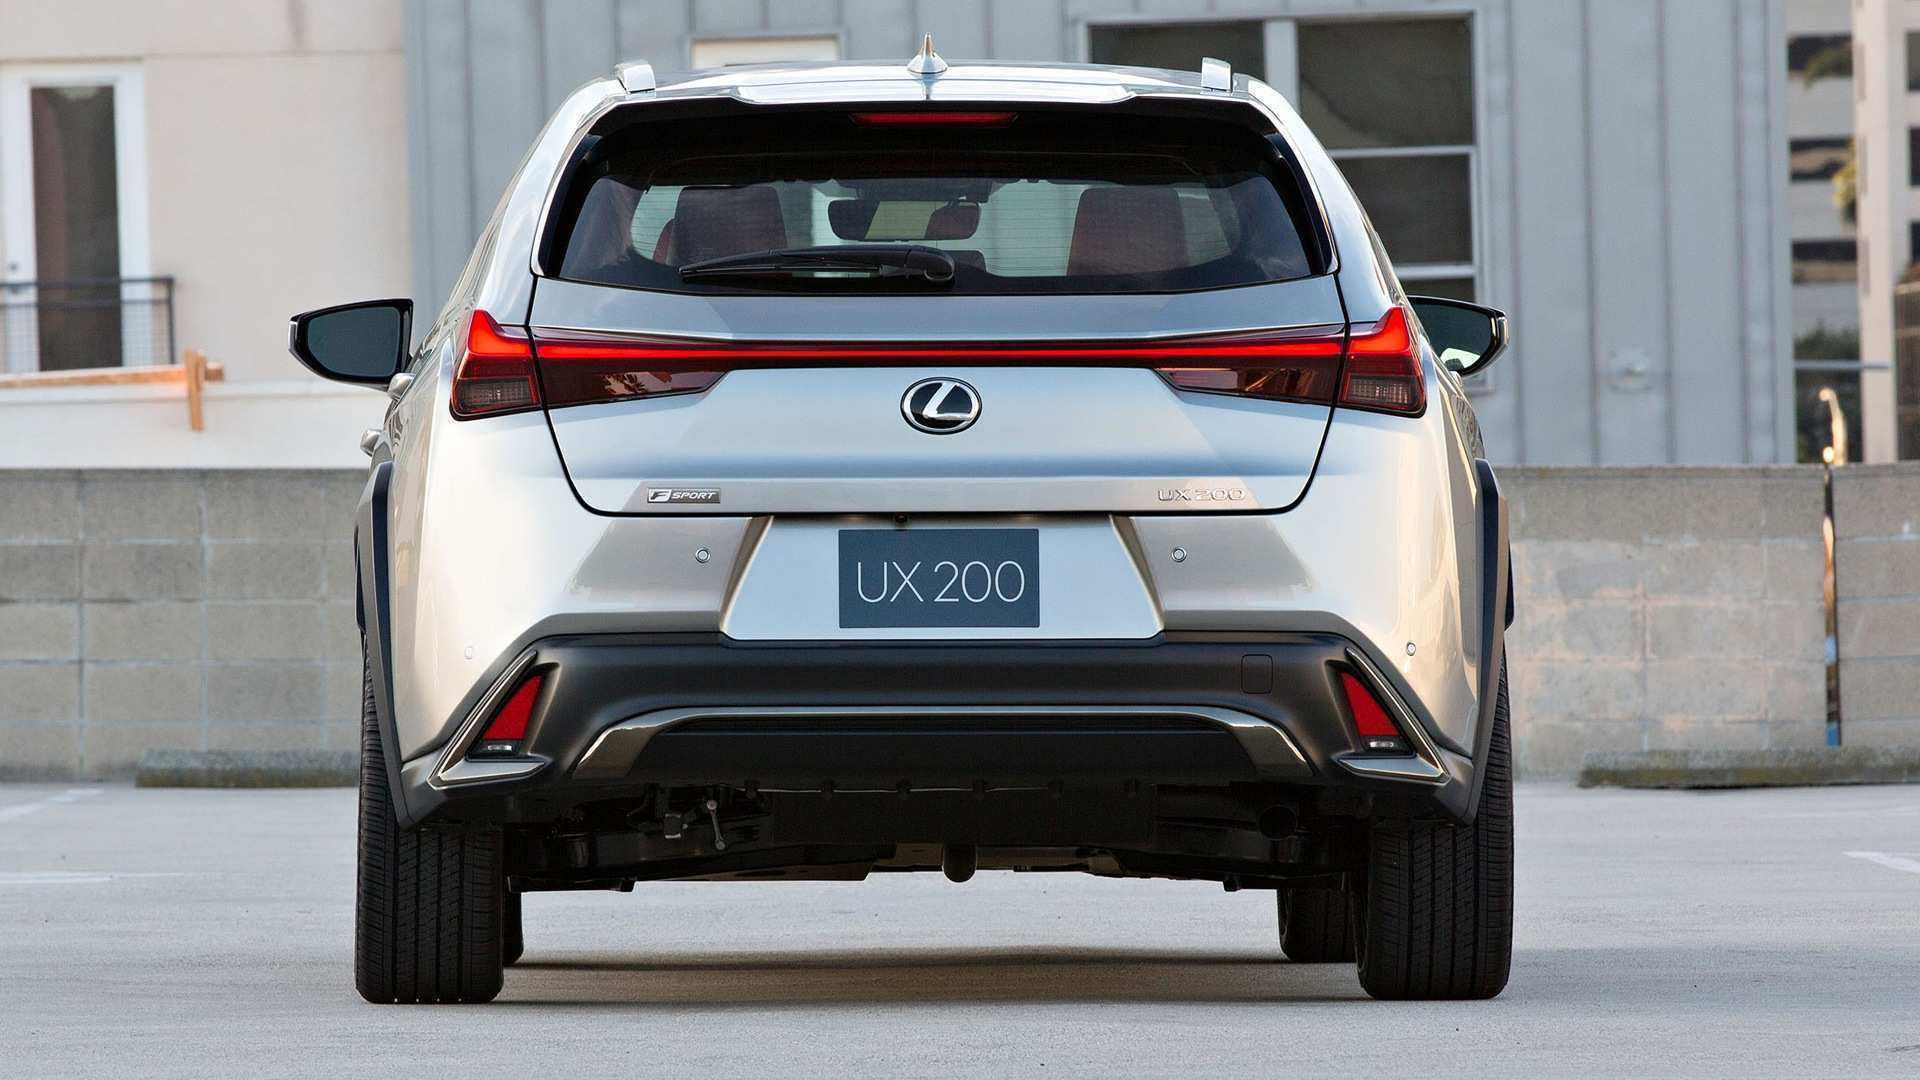 52 Concept of Lexus 2020 Suv Ux Wallpaper by Lexus 2020 Suv Ux